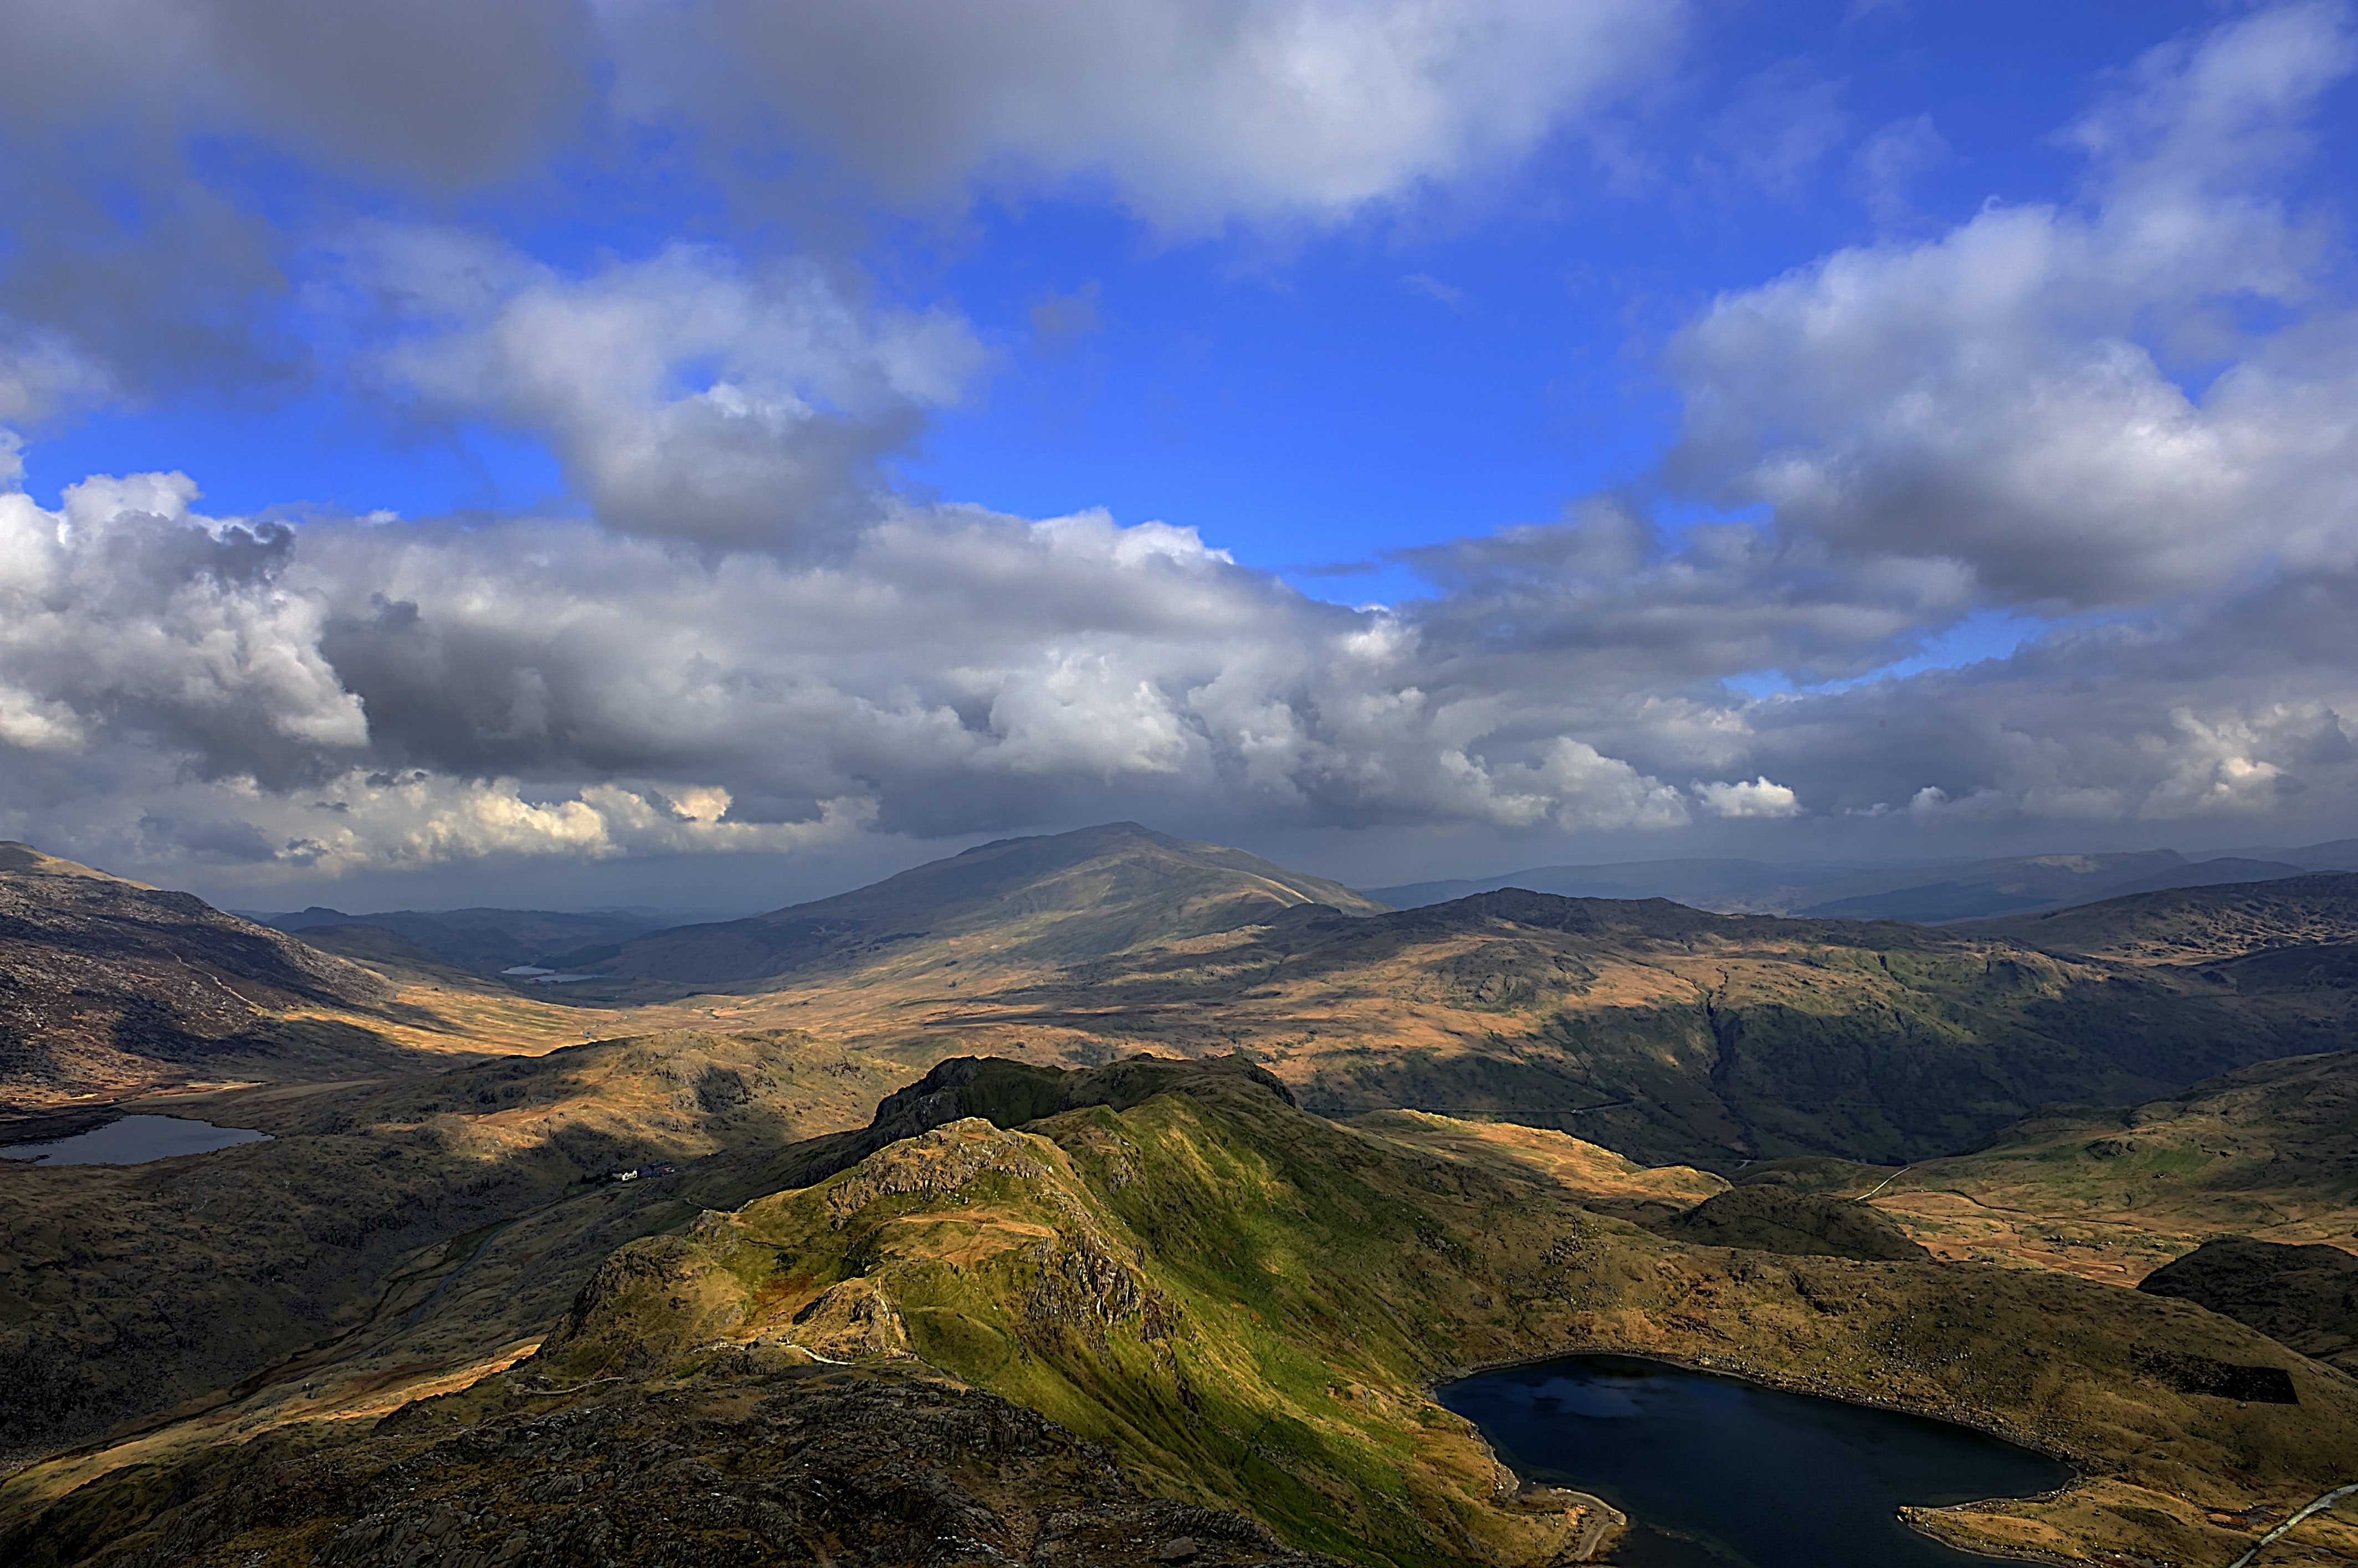 Gray clouds gathering over a mountainous landscape in Snowdonia National Park